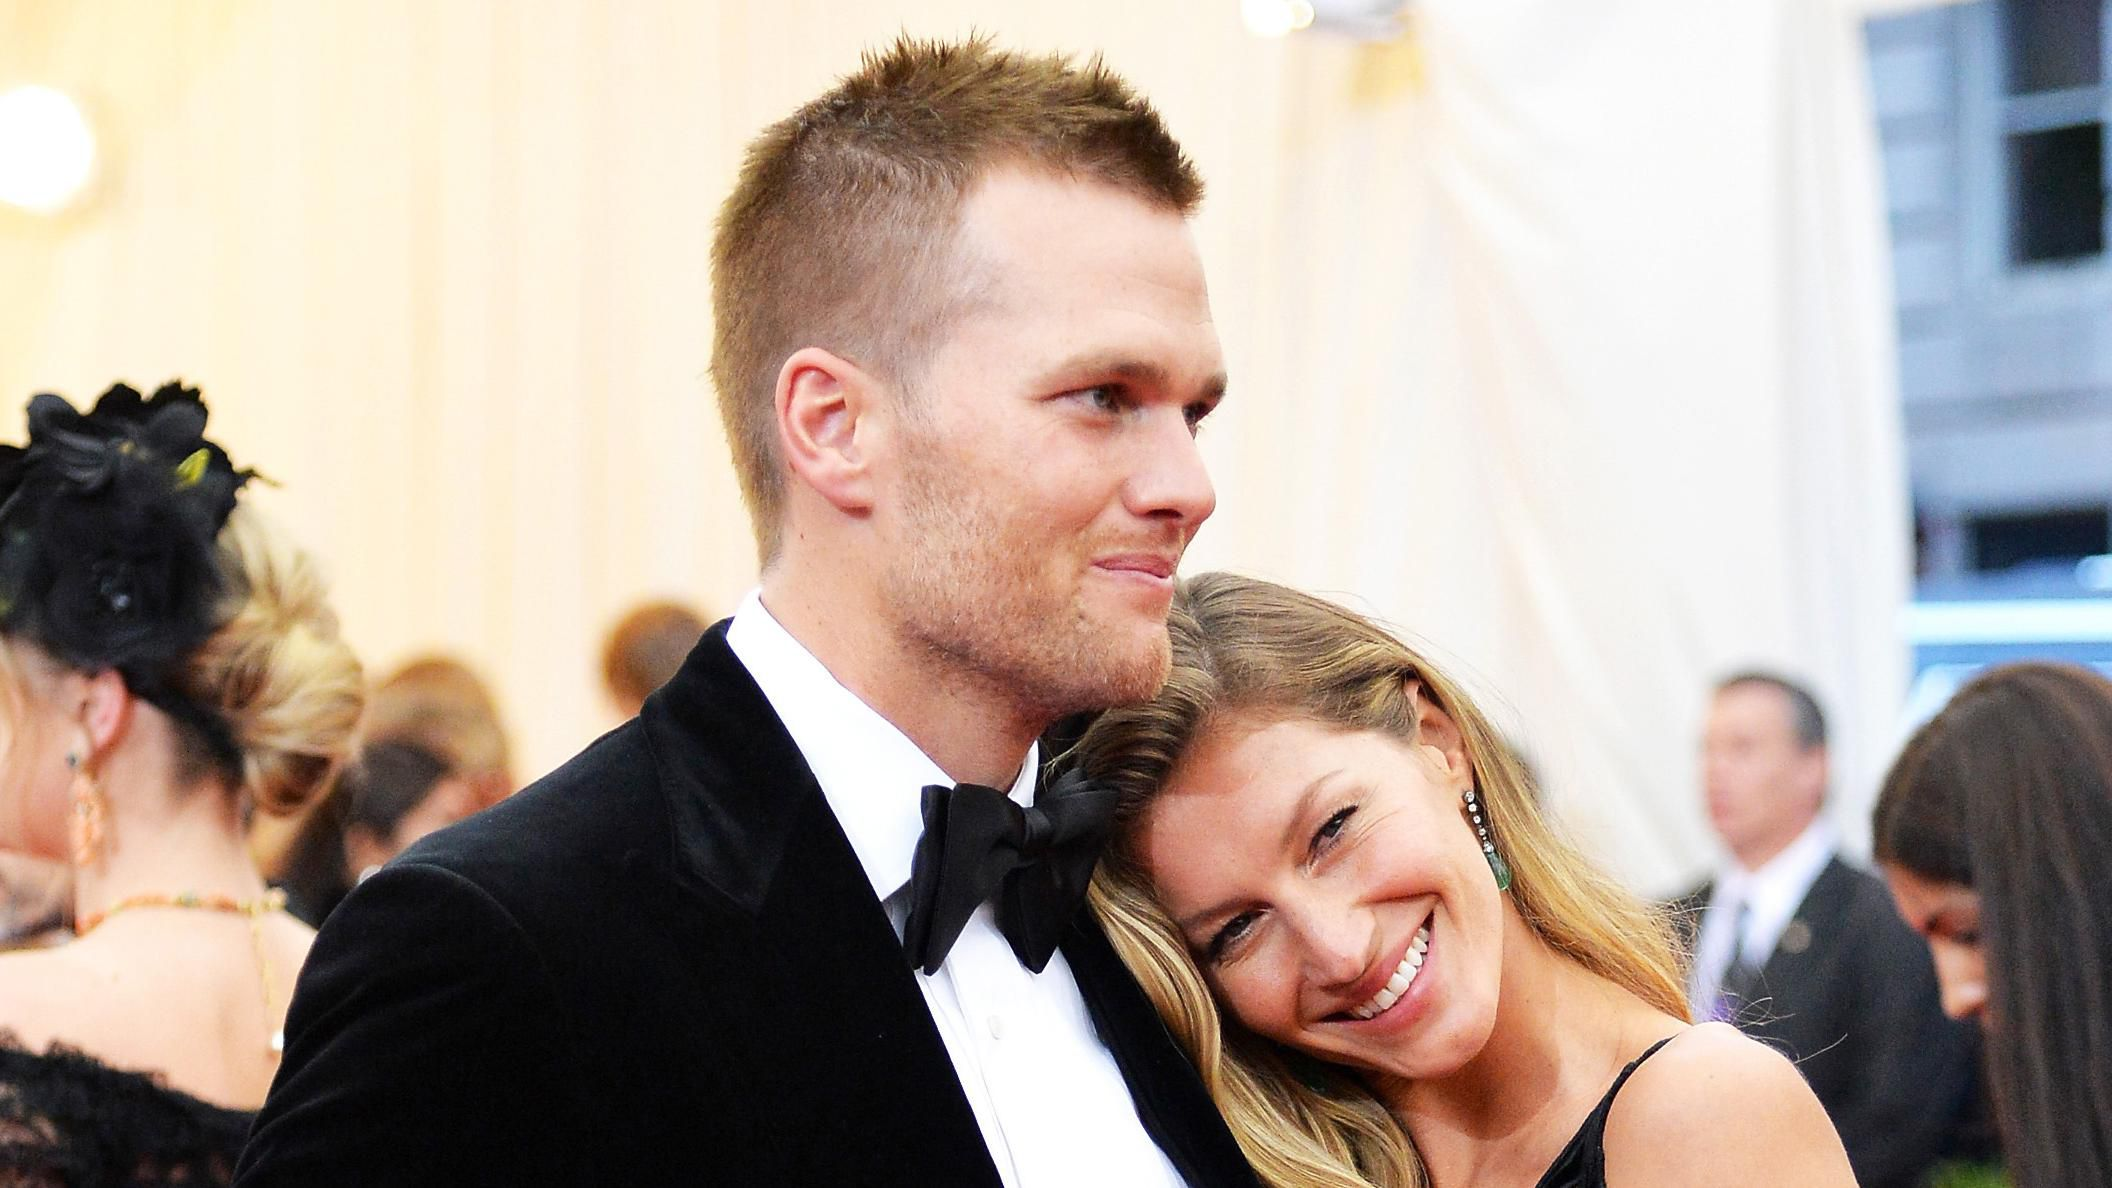 Gisele Bündchen Shares Details About Her and Tom Brady's